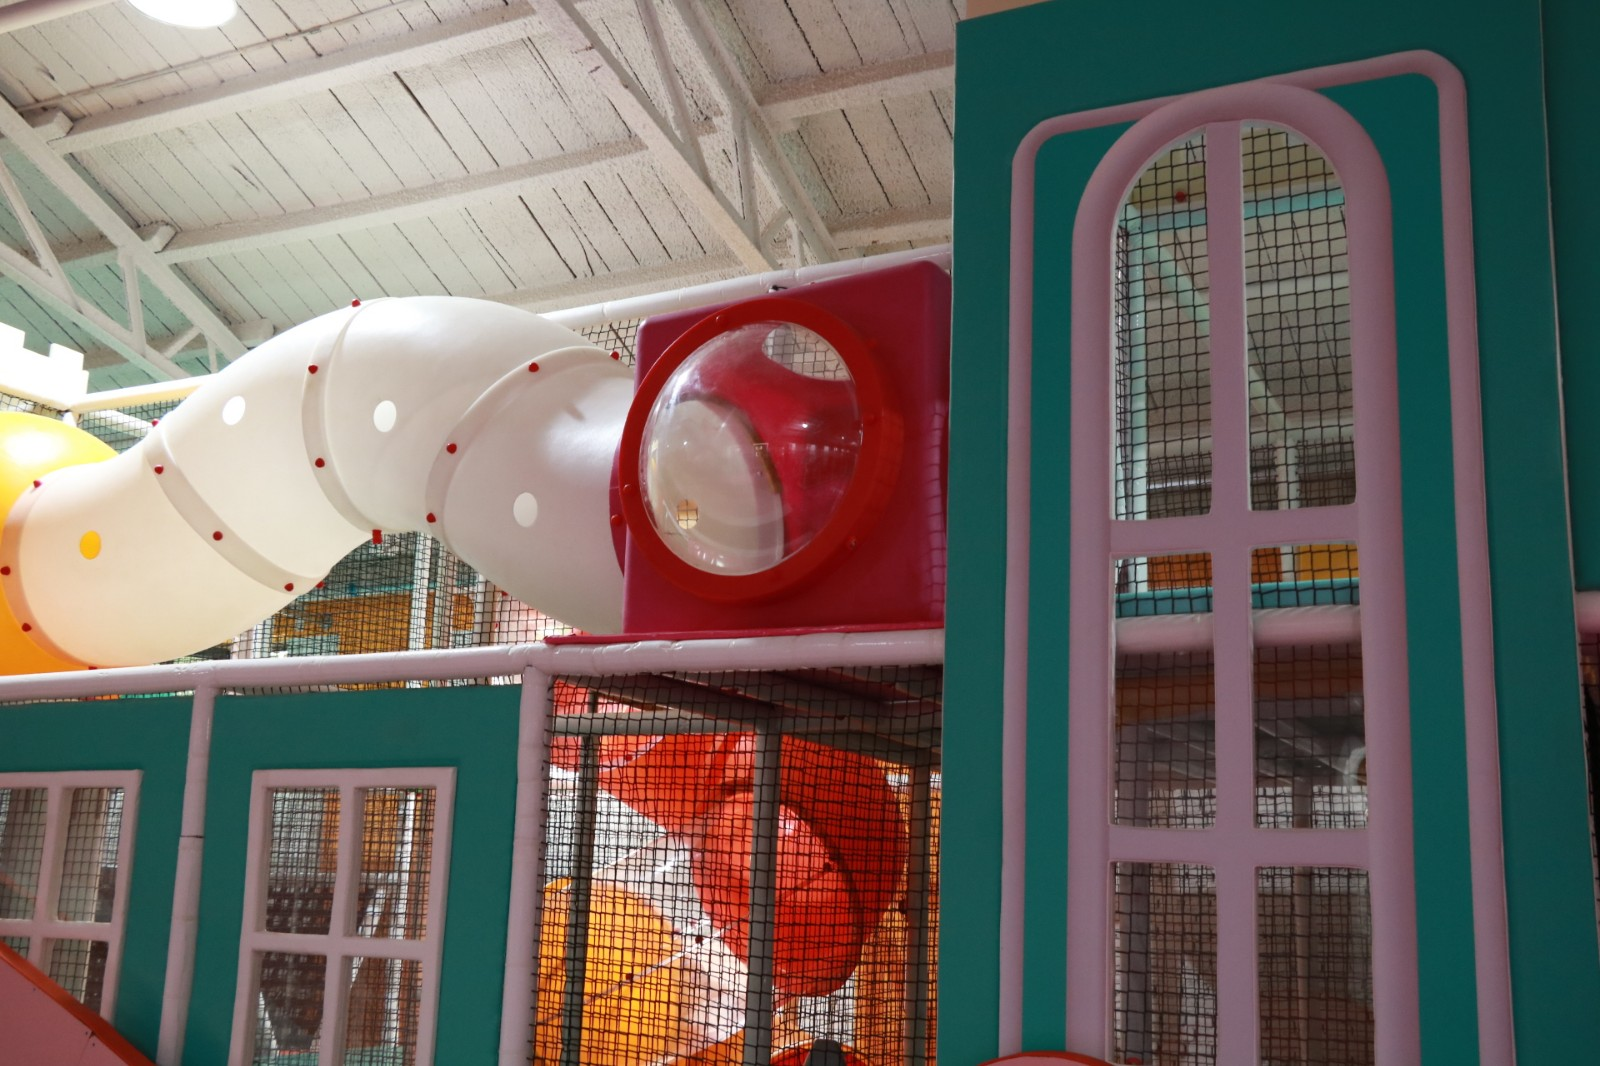 dream garden indoor playground equipment manufacturers manufacturer